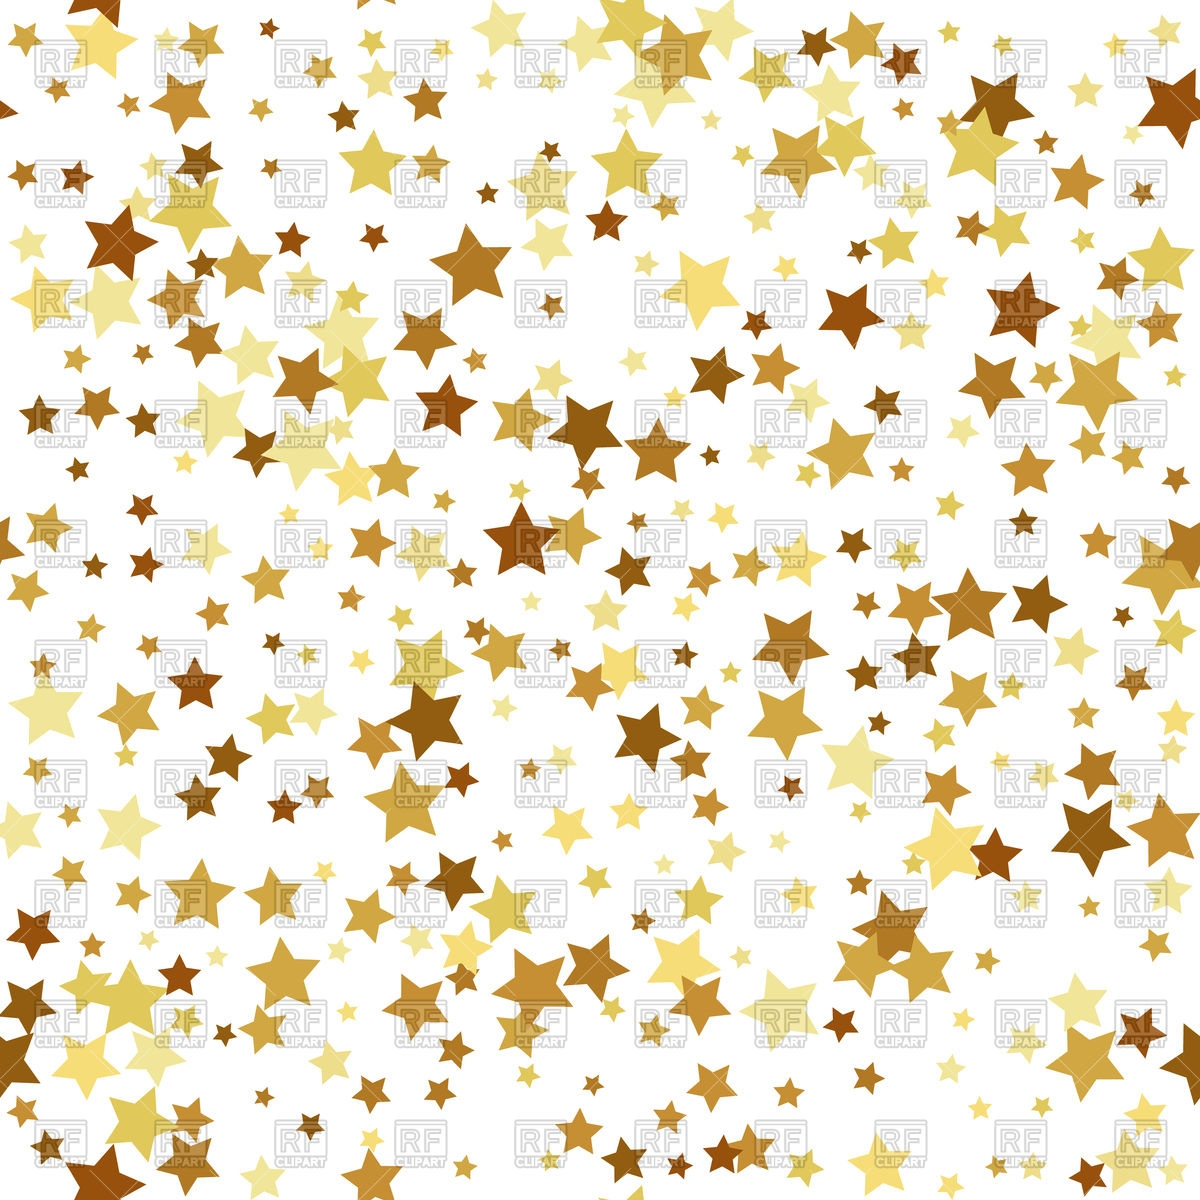 Free Star Cliparts Background, Download Free Clip Art, Free.